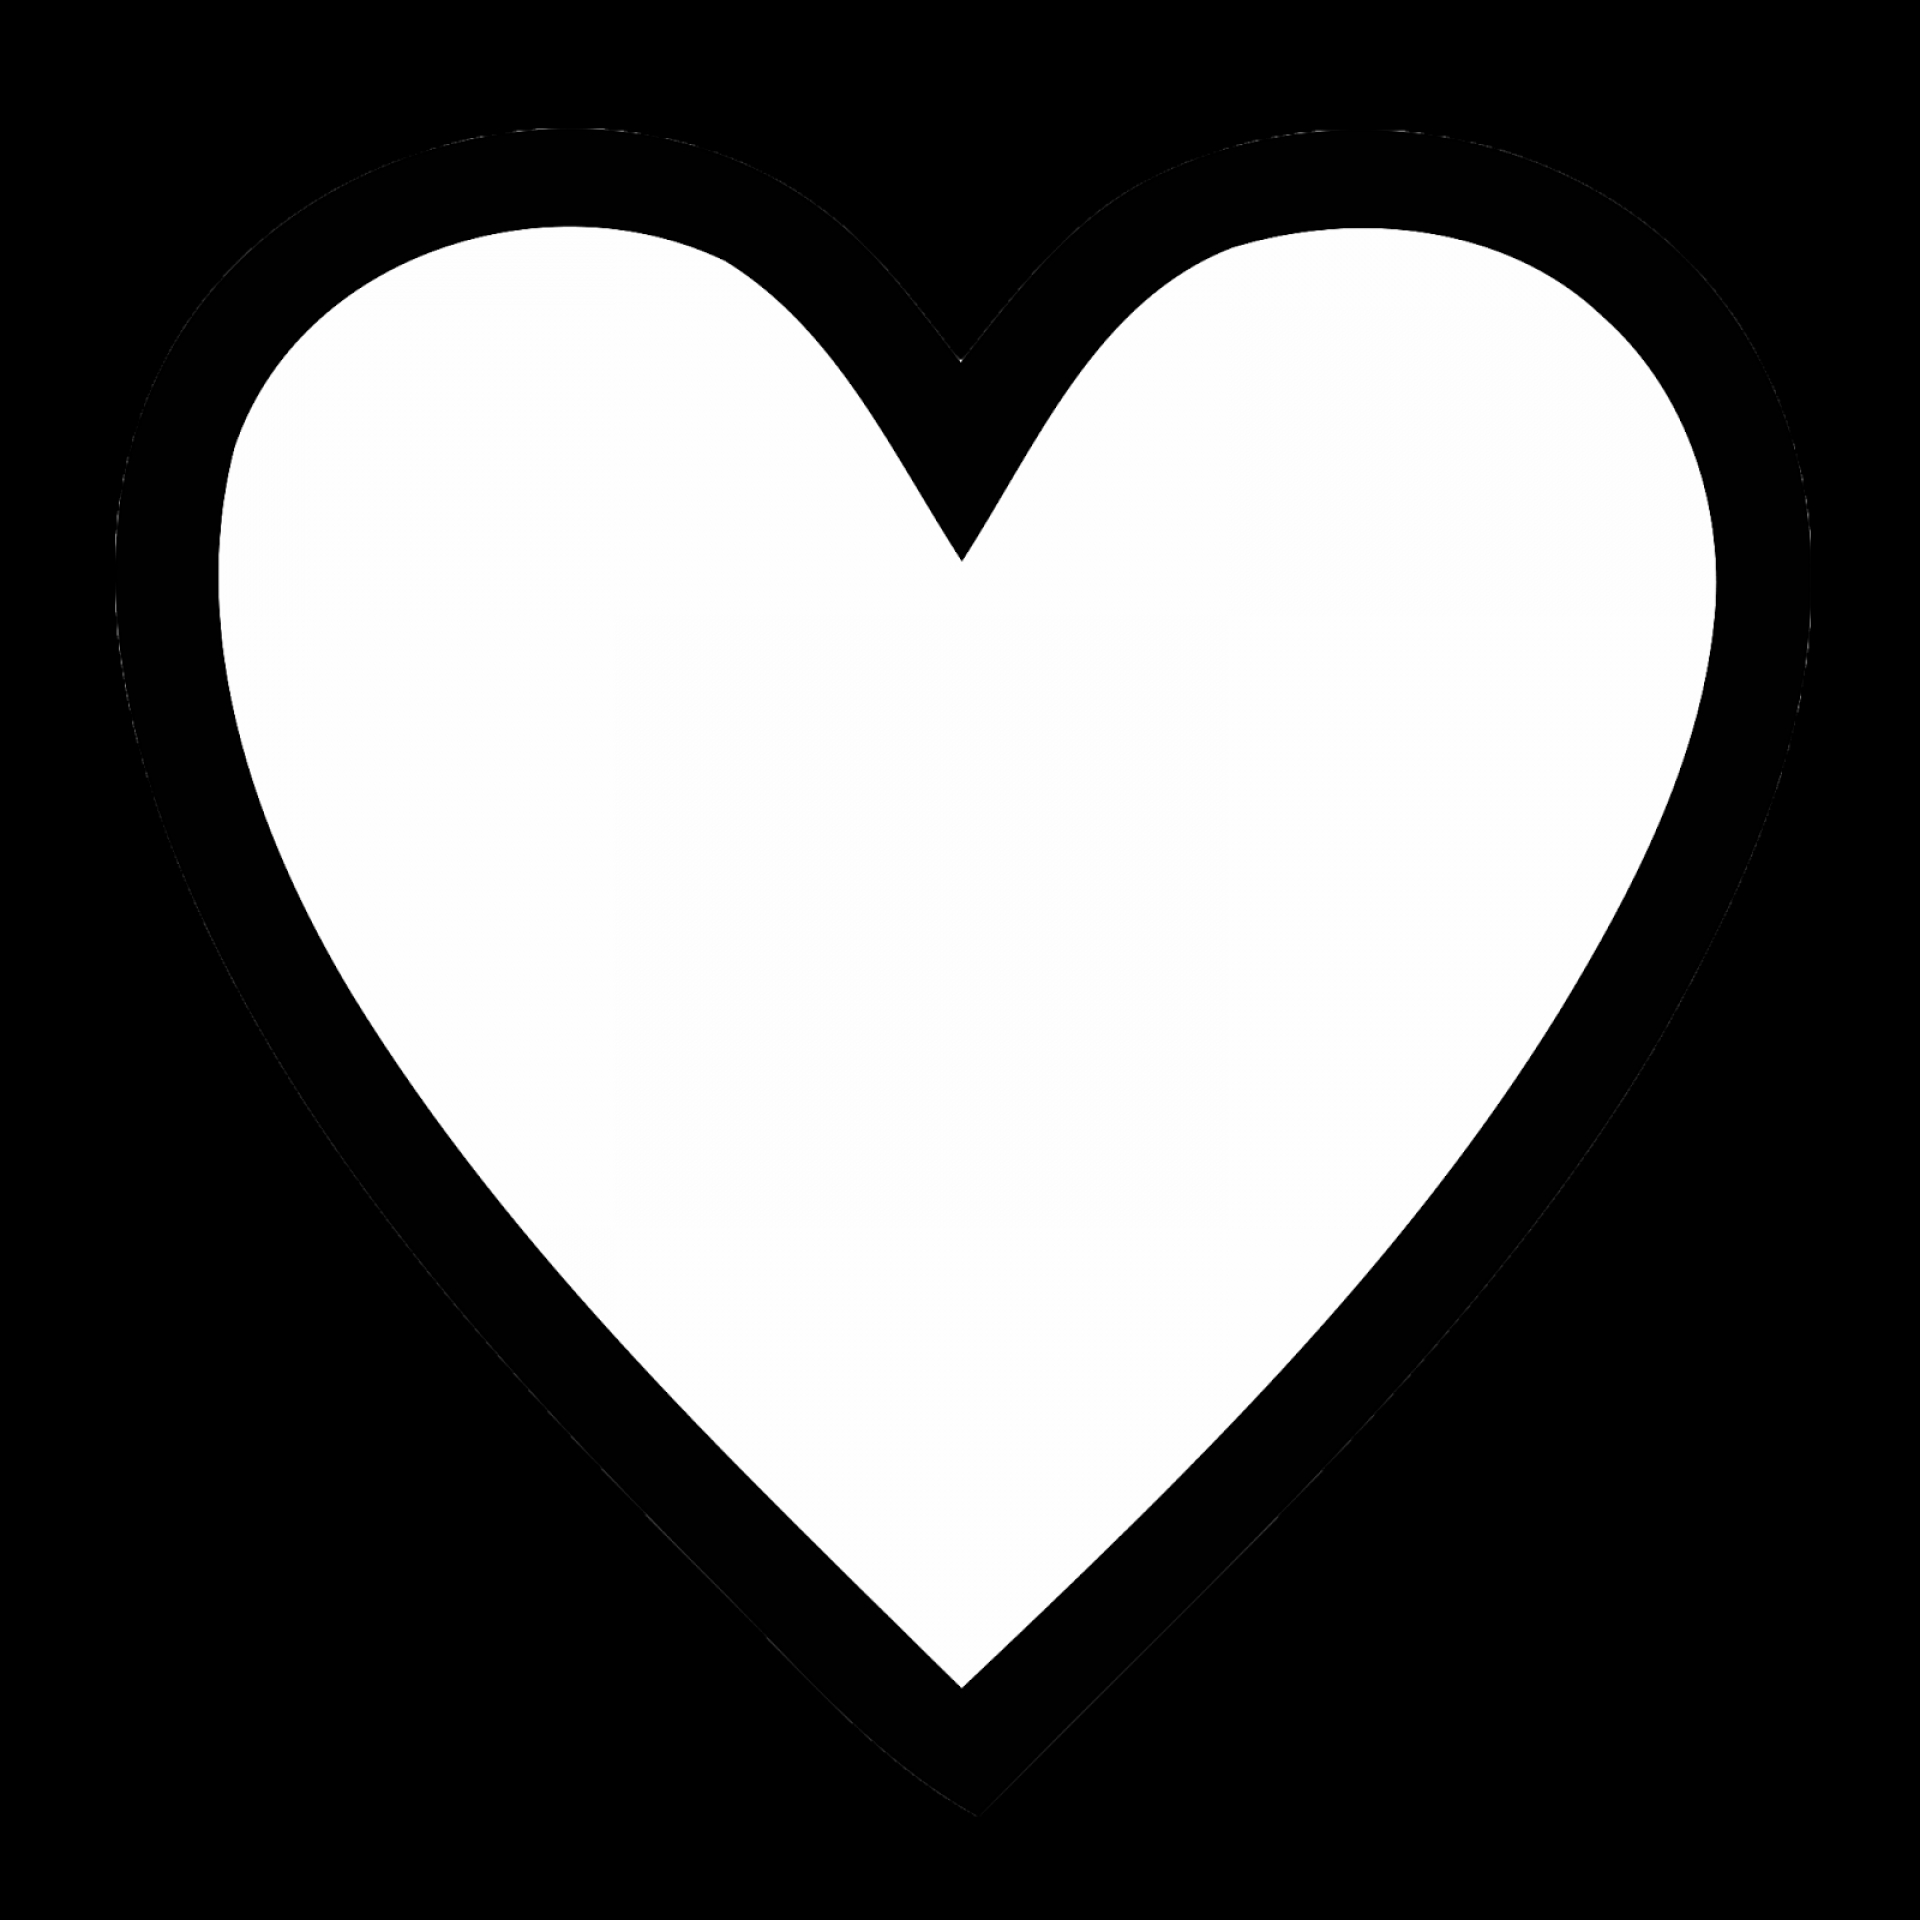 Black And White Love Heart Wallpaper : Black And White Heart Wallpaper - WallpaperSafari